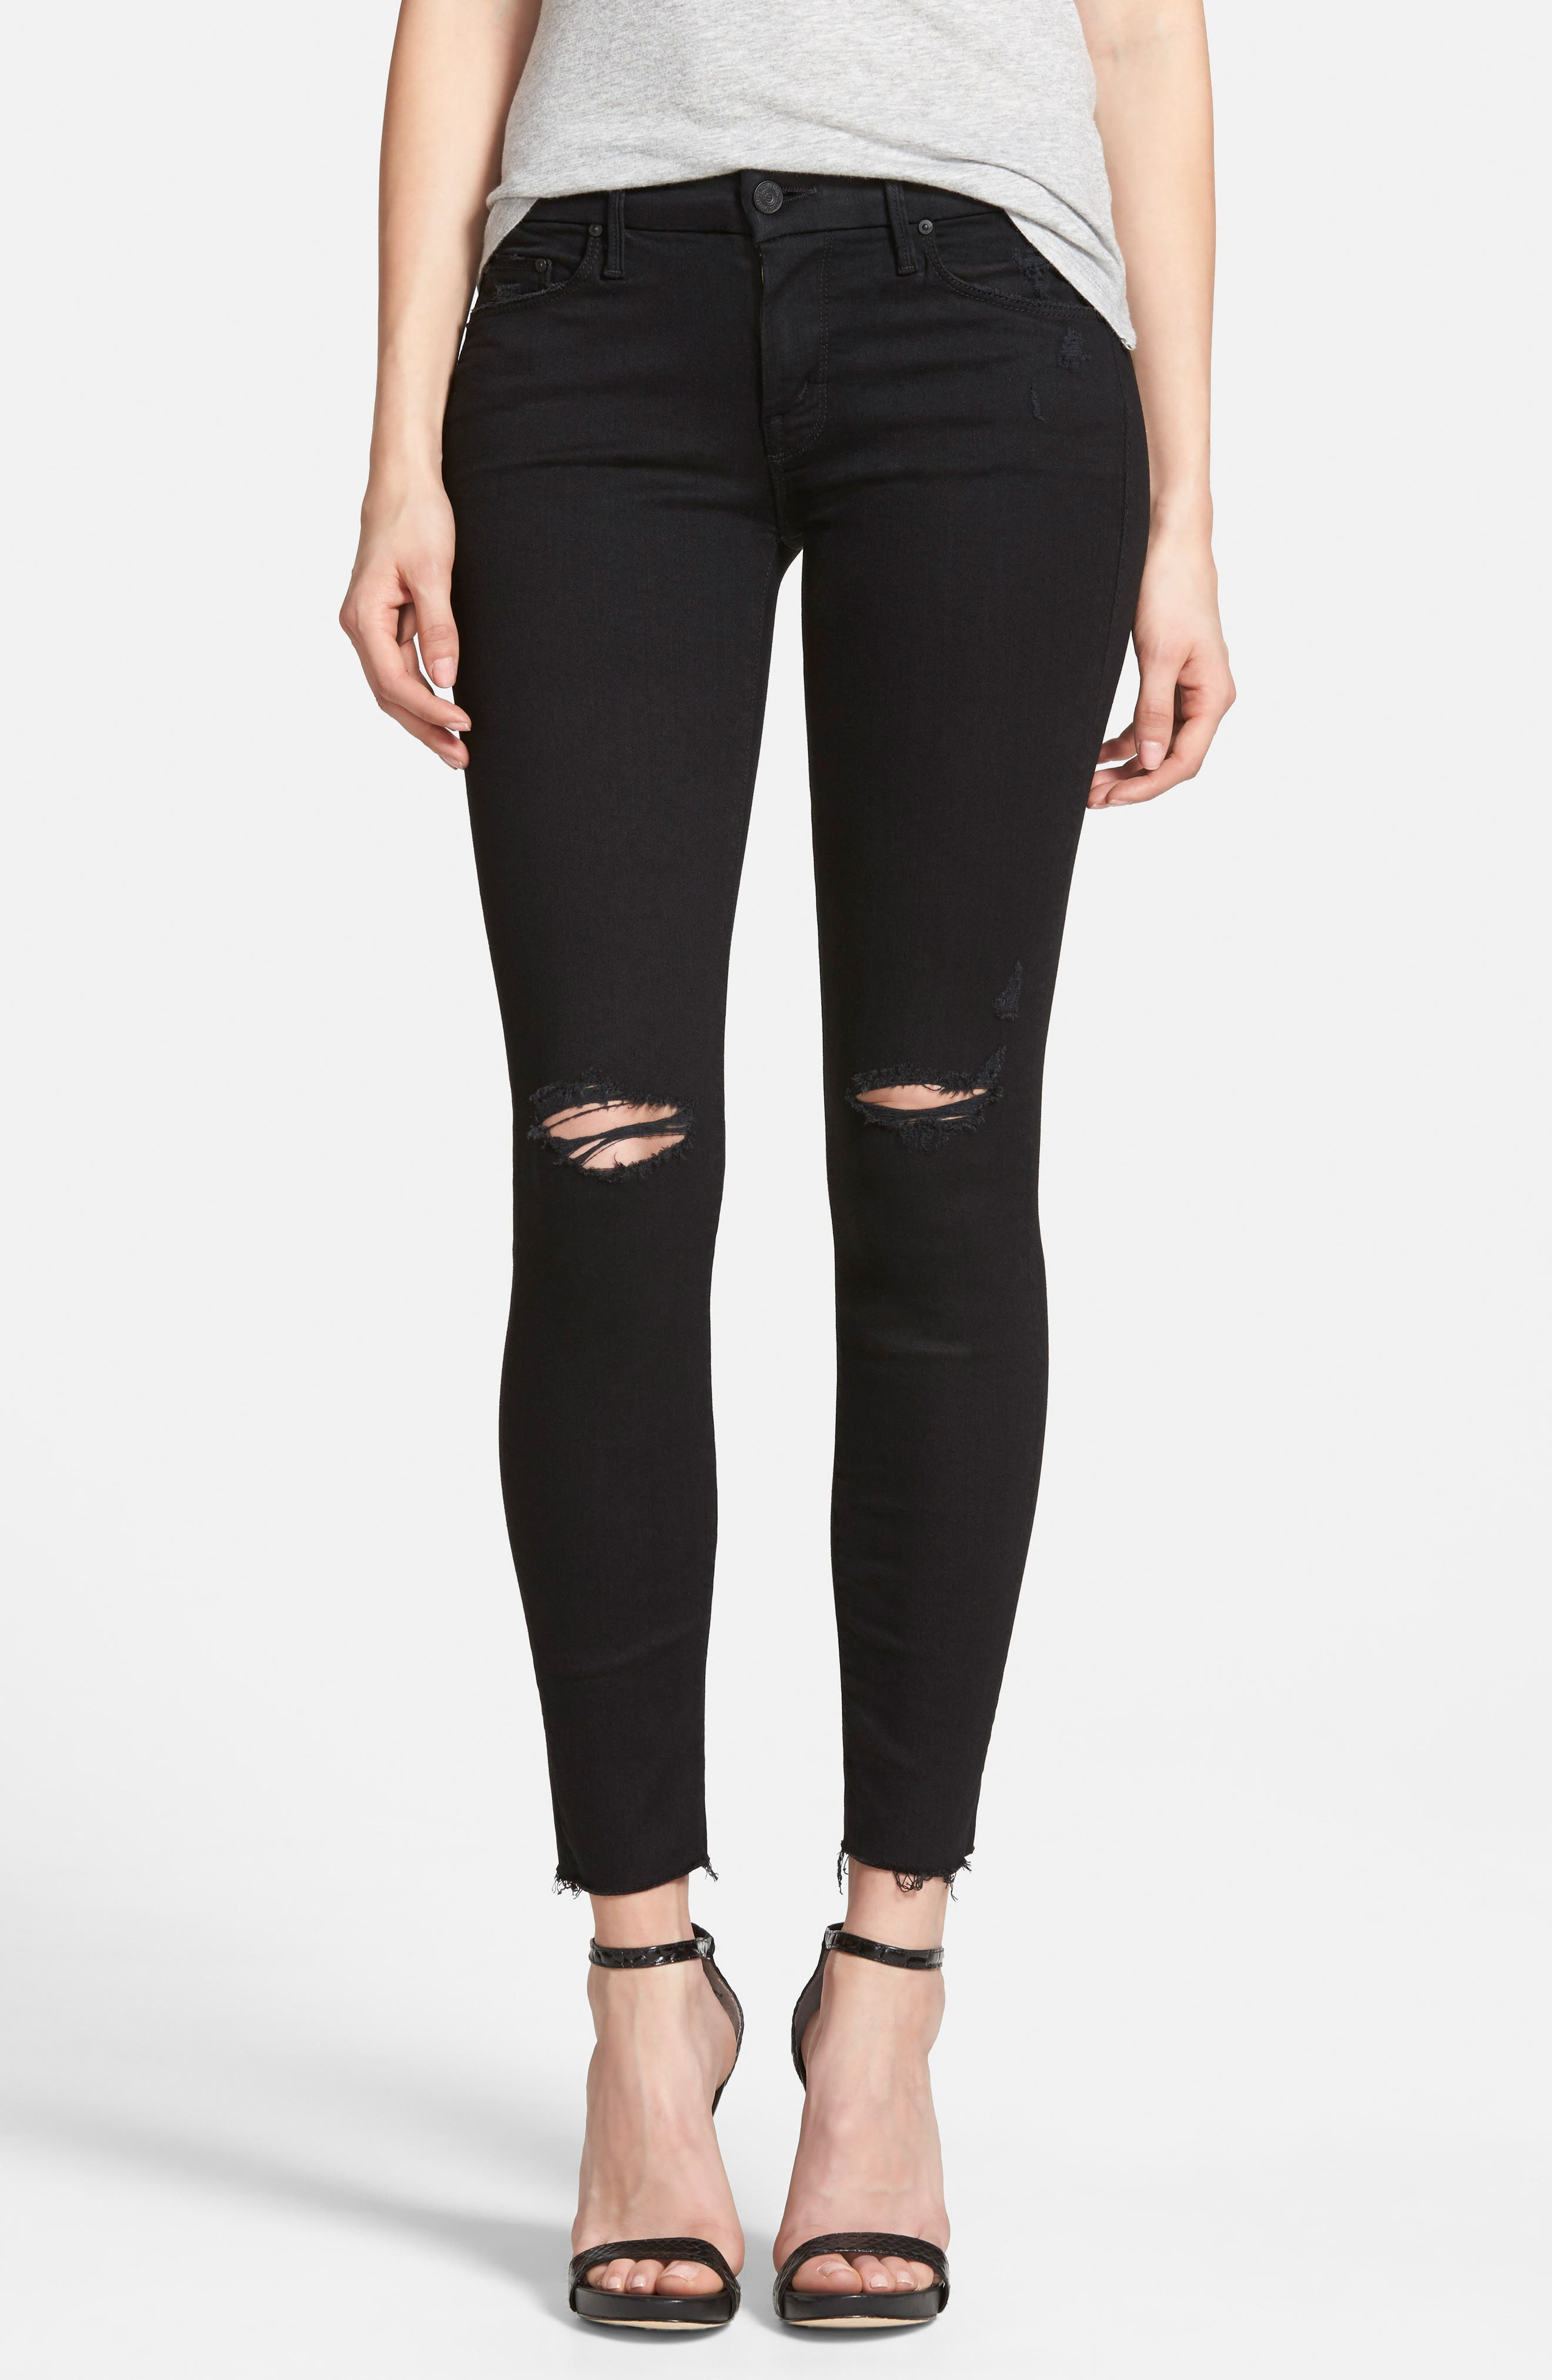 MOTHER, 'The Looker' Frayed Ankle Skinny Jeans, Main thumbnail 1, color, GUILTY AS SIN